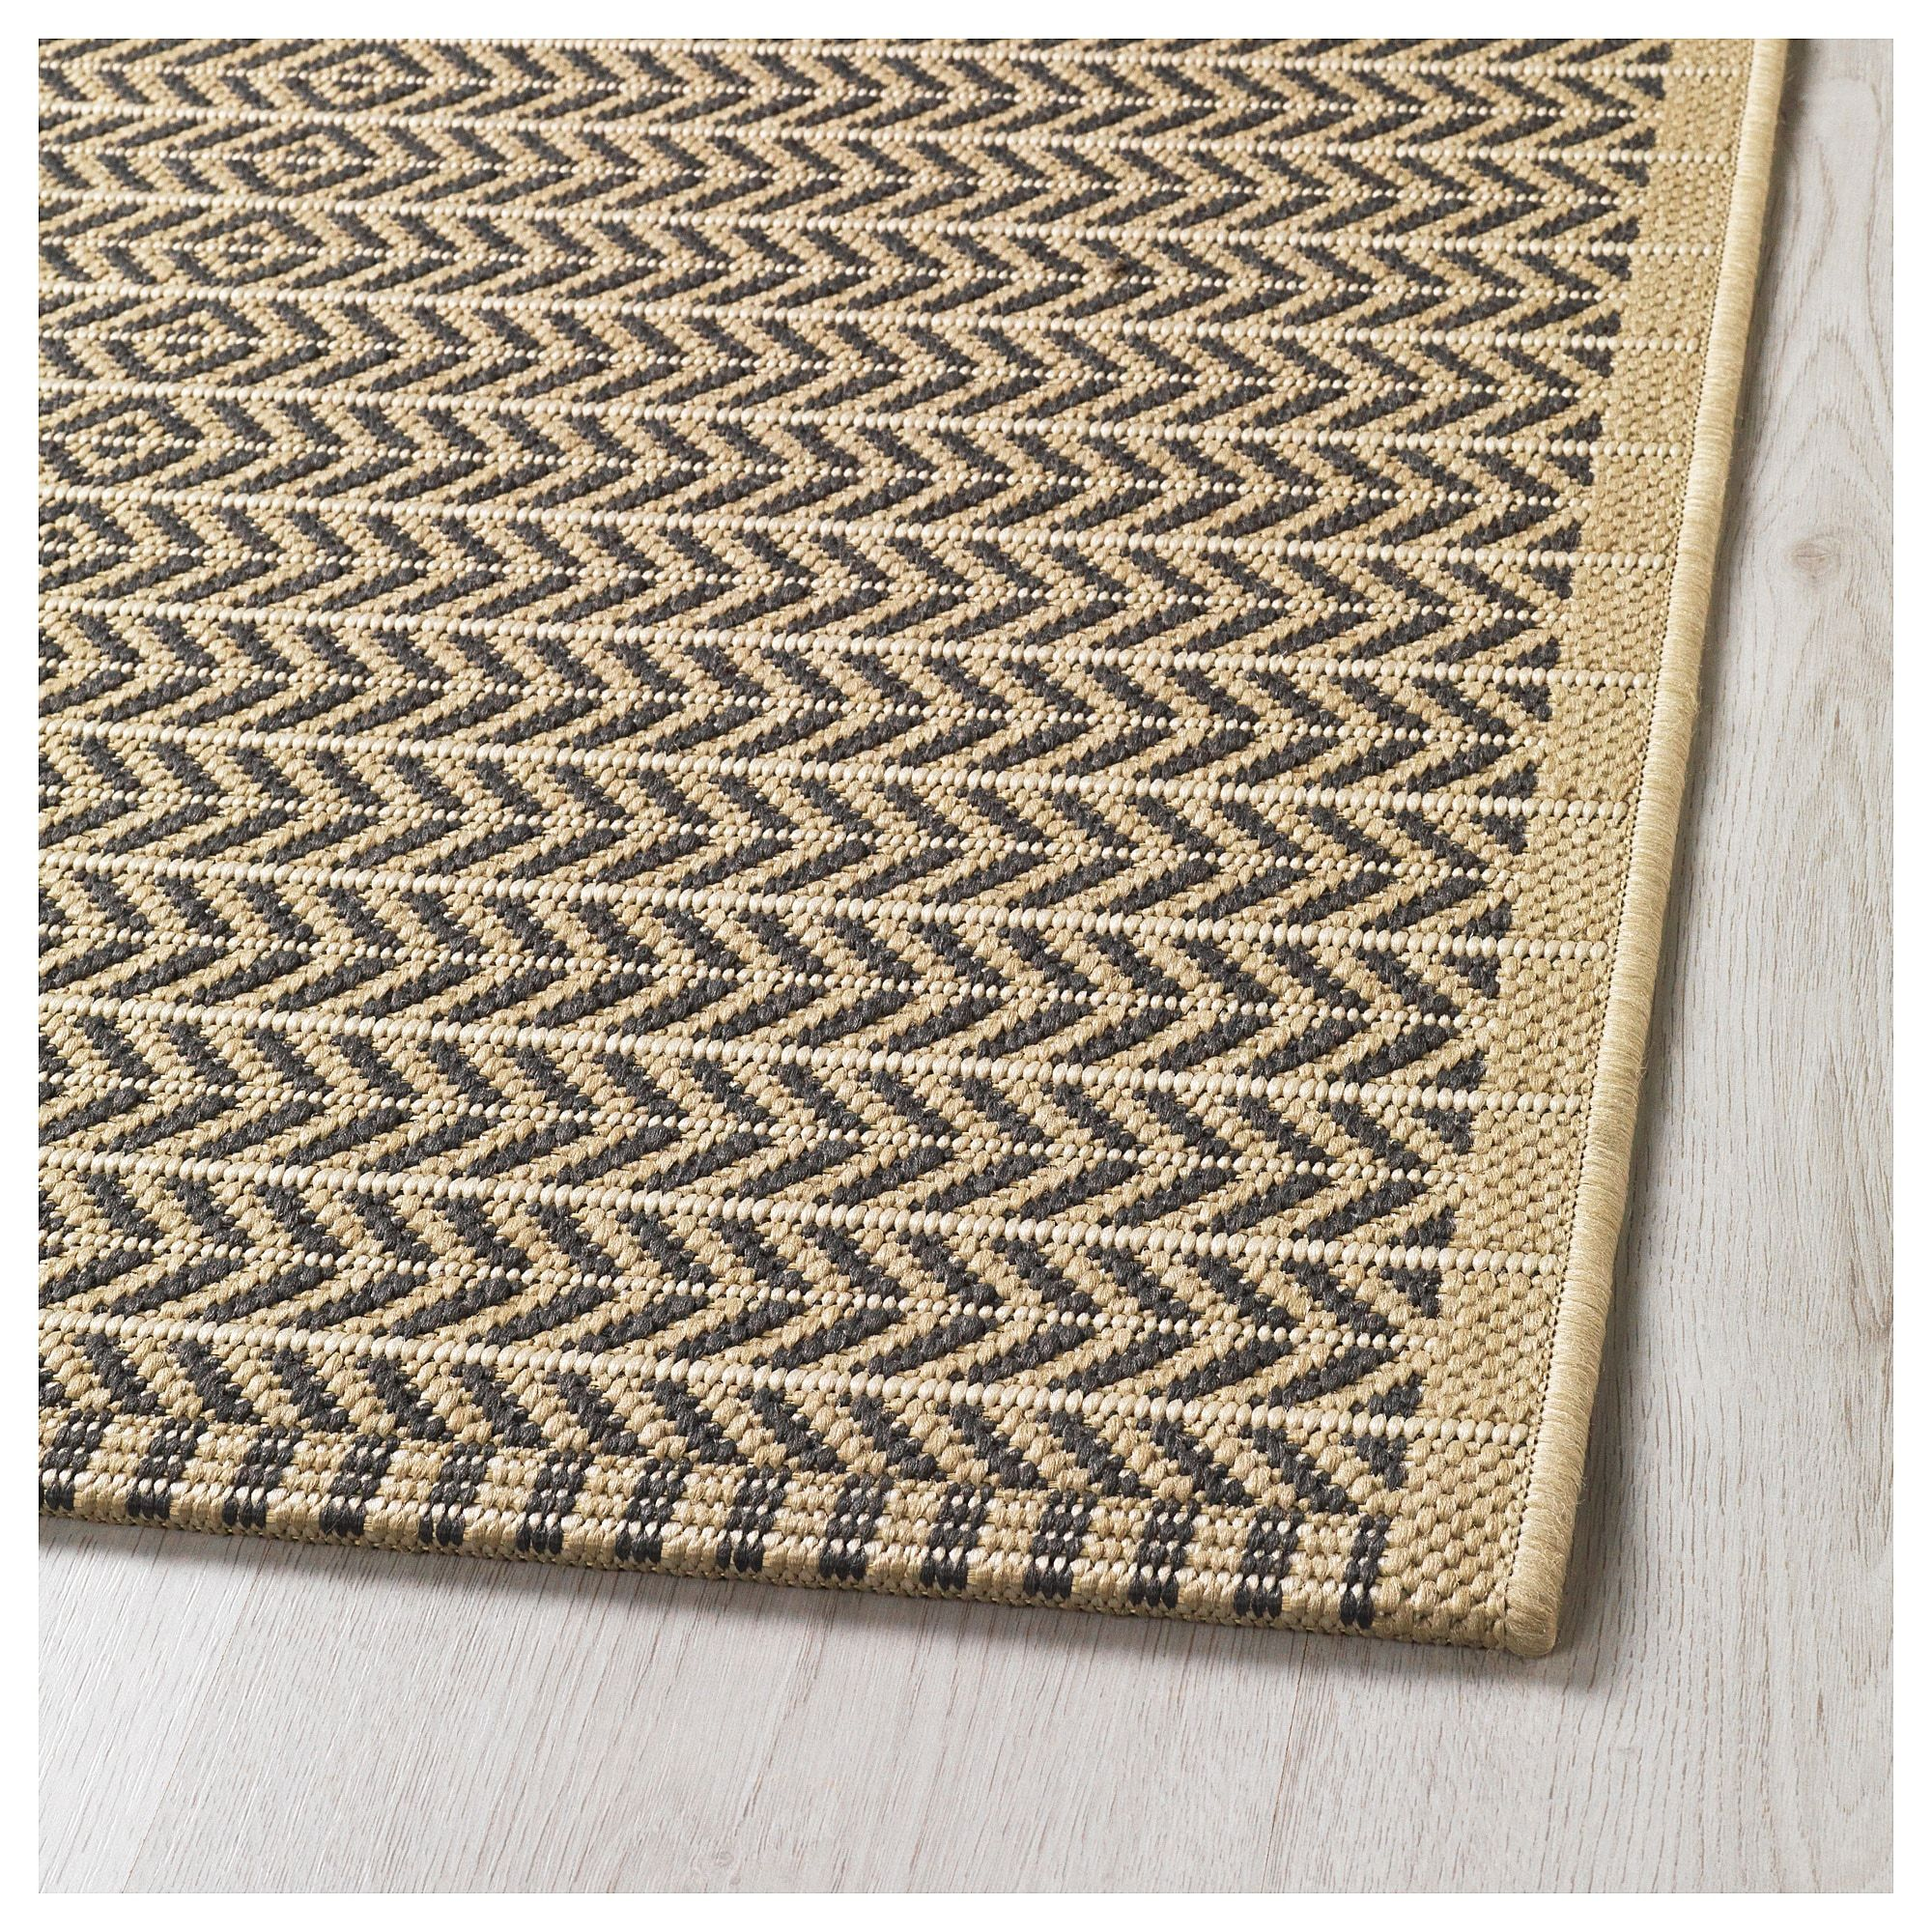 Lobbak Rug Flatwoven In Outdoor Beige Ikea Outdoor Rugs Cheap Rugs On Carpet Rugs